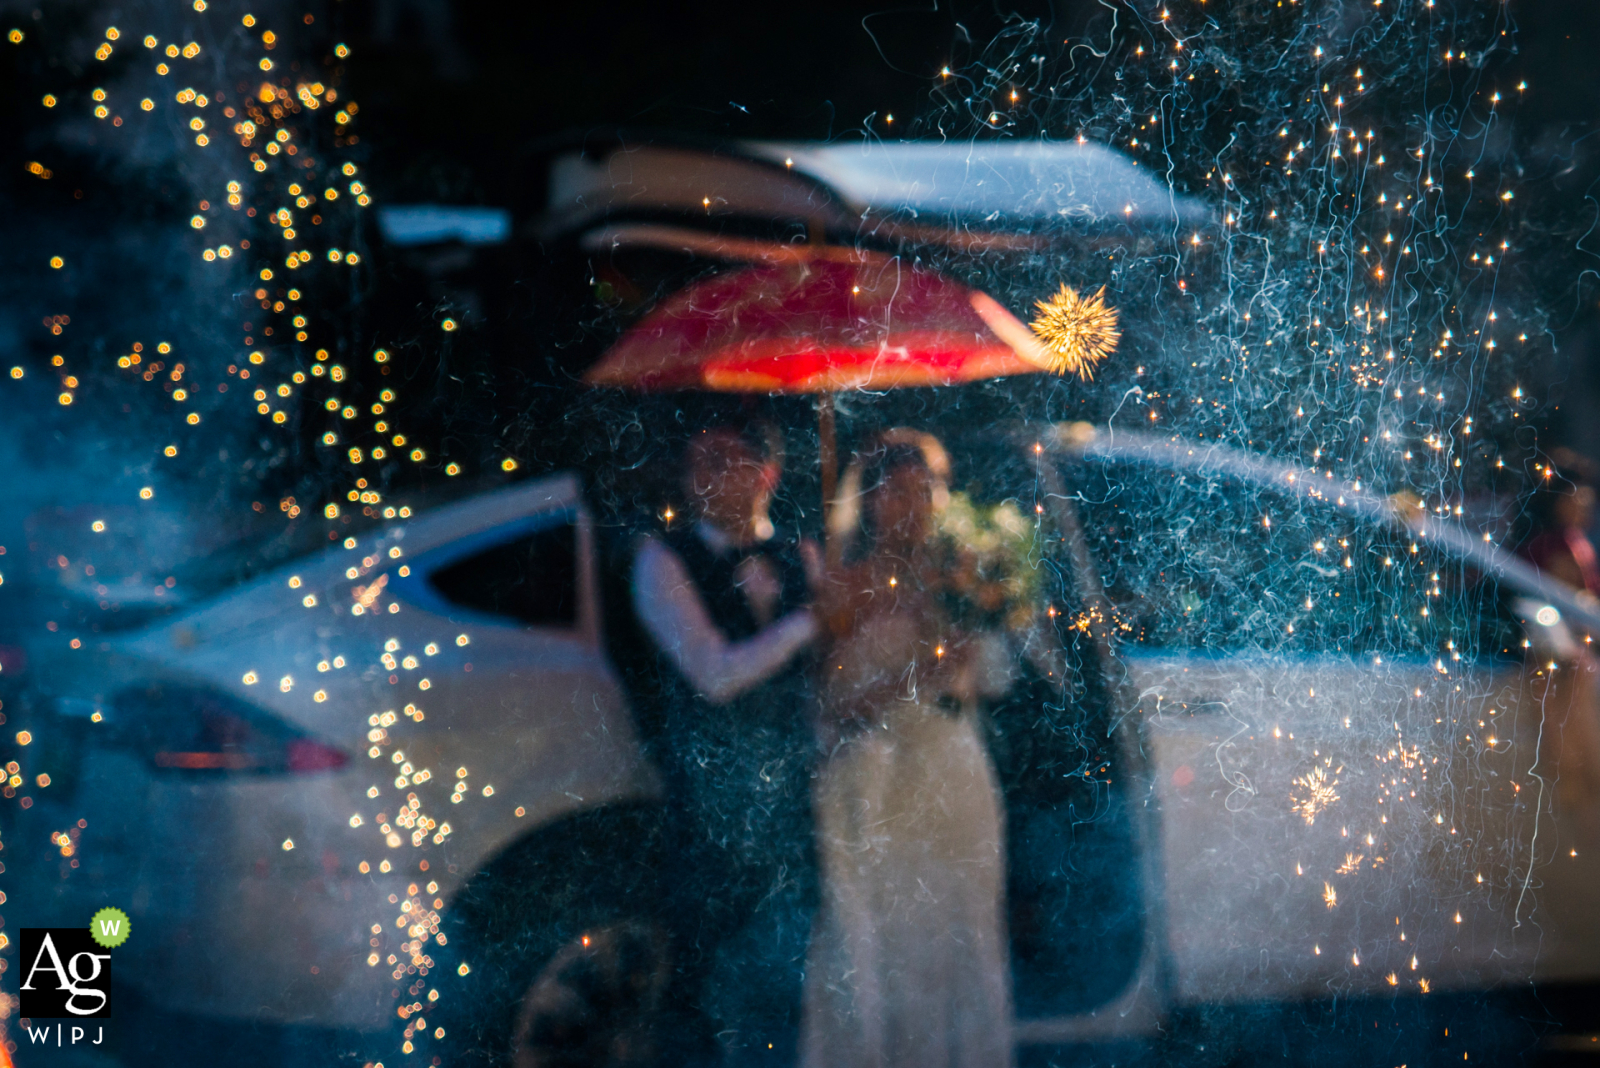 Fuzhou, Fujian wedding photographer said this: In some cities in China, when the bride and groom return home, they need to burn fireworks to celebrate, even during the day.